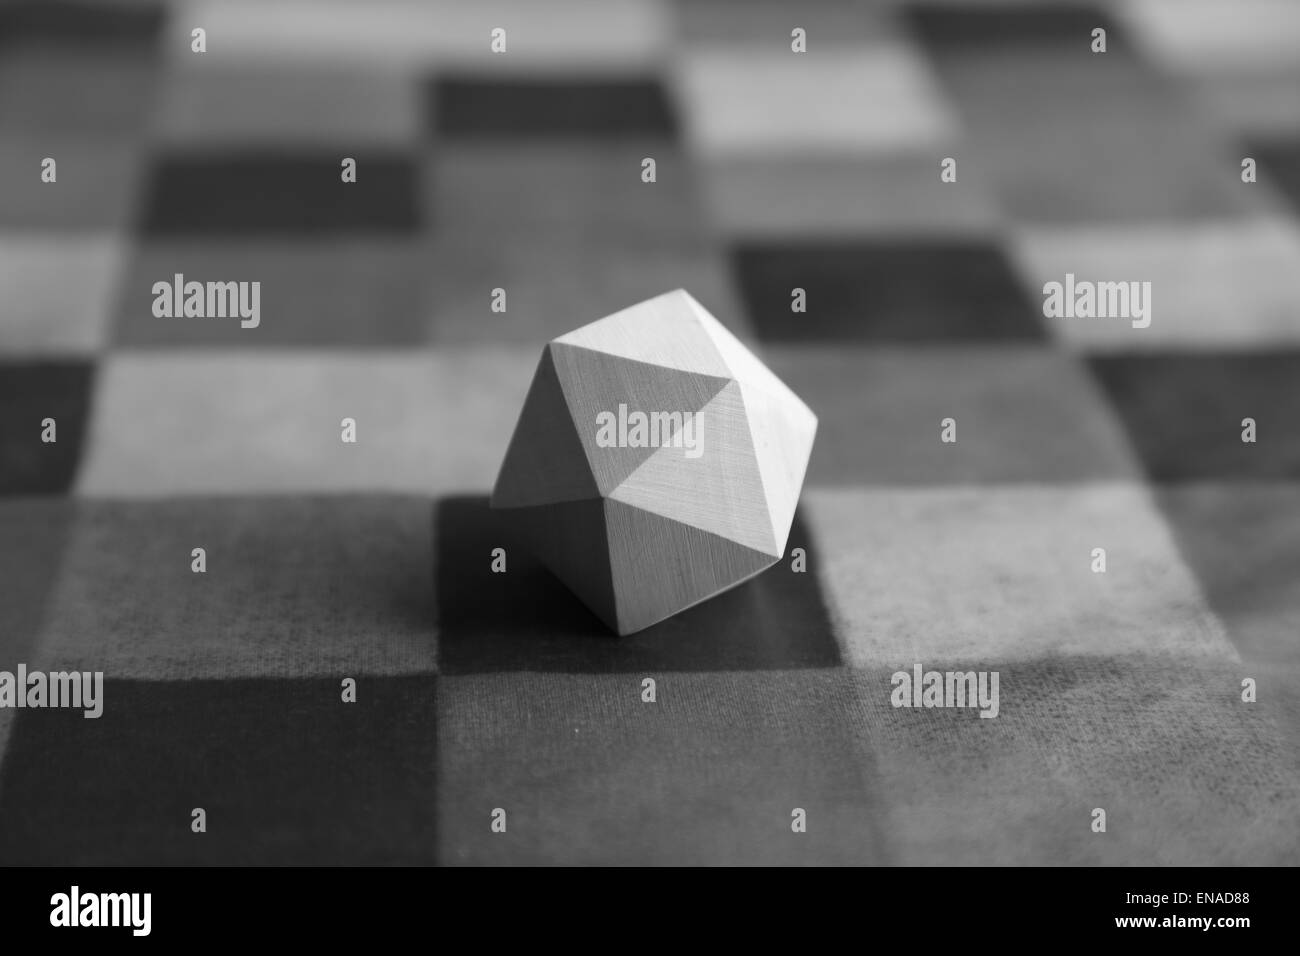 A wooden, regular icosahedron resting on a patterned surface - Stock Image